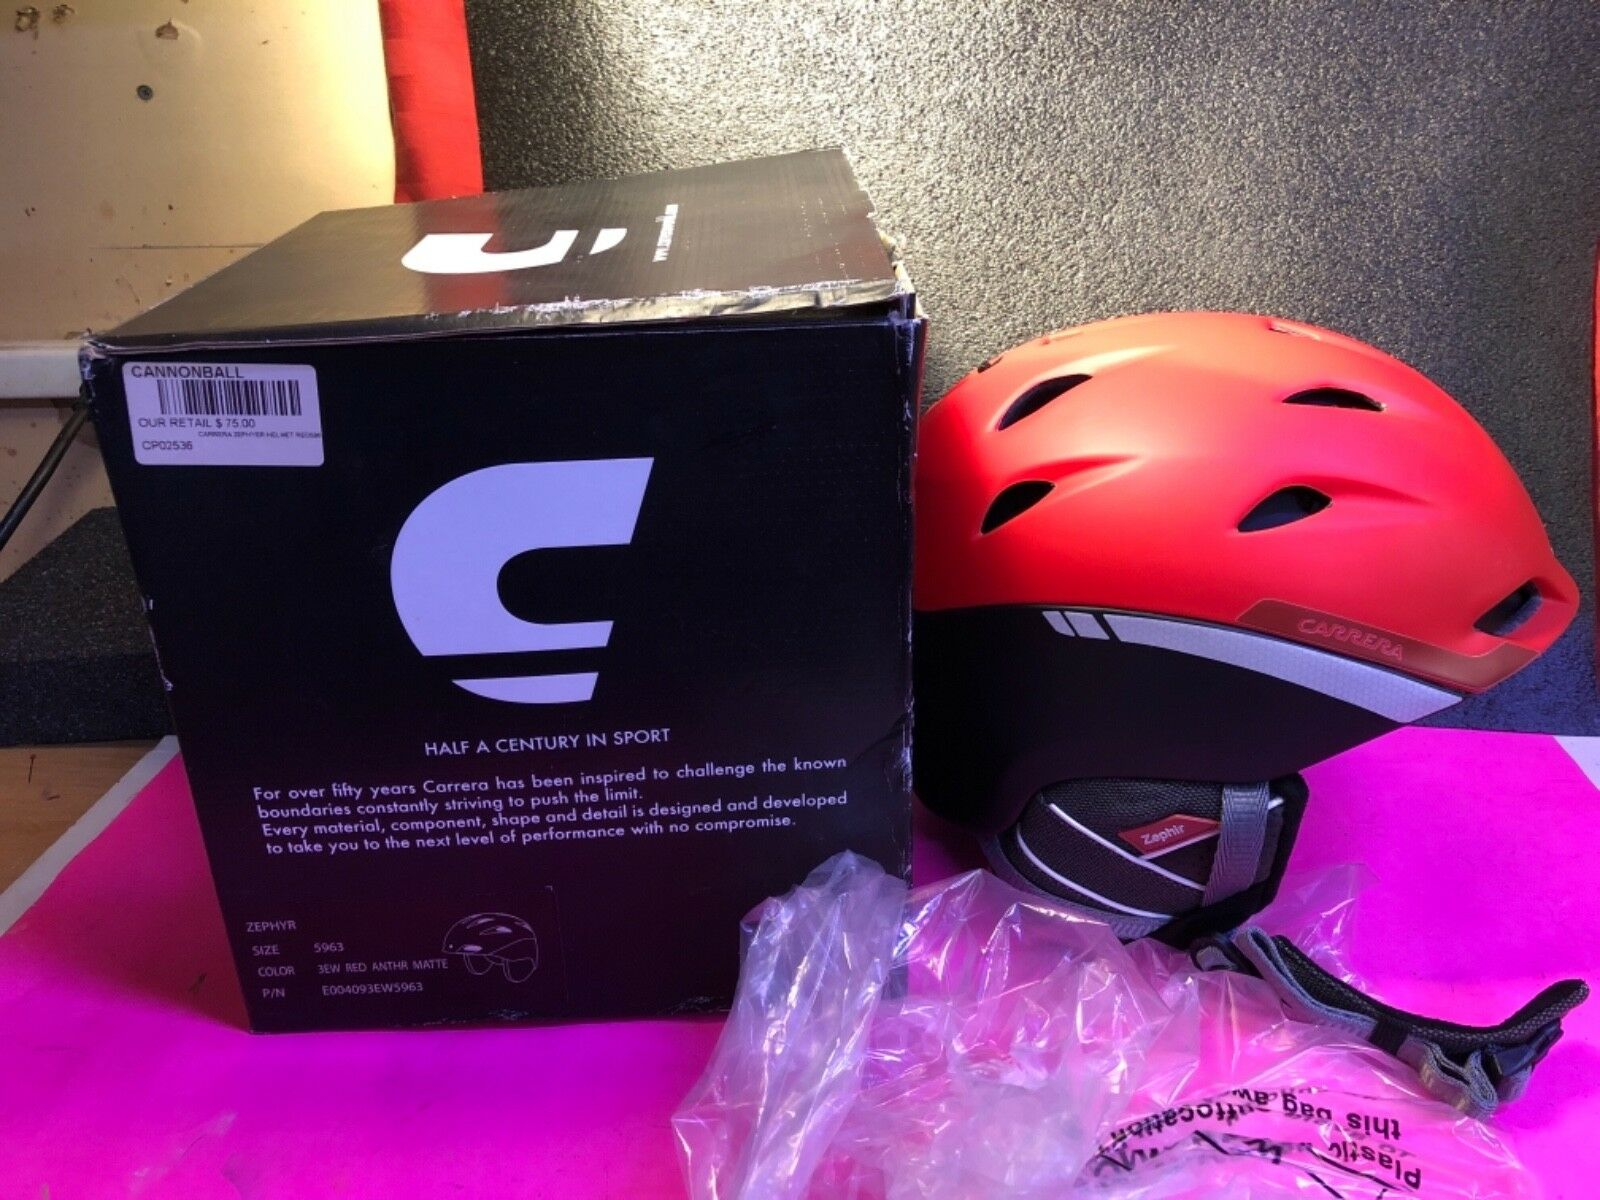 Brand New In Box Carrera Ski Snowboard Helmet Size 59-63 Red Anthr Zephyr size L